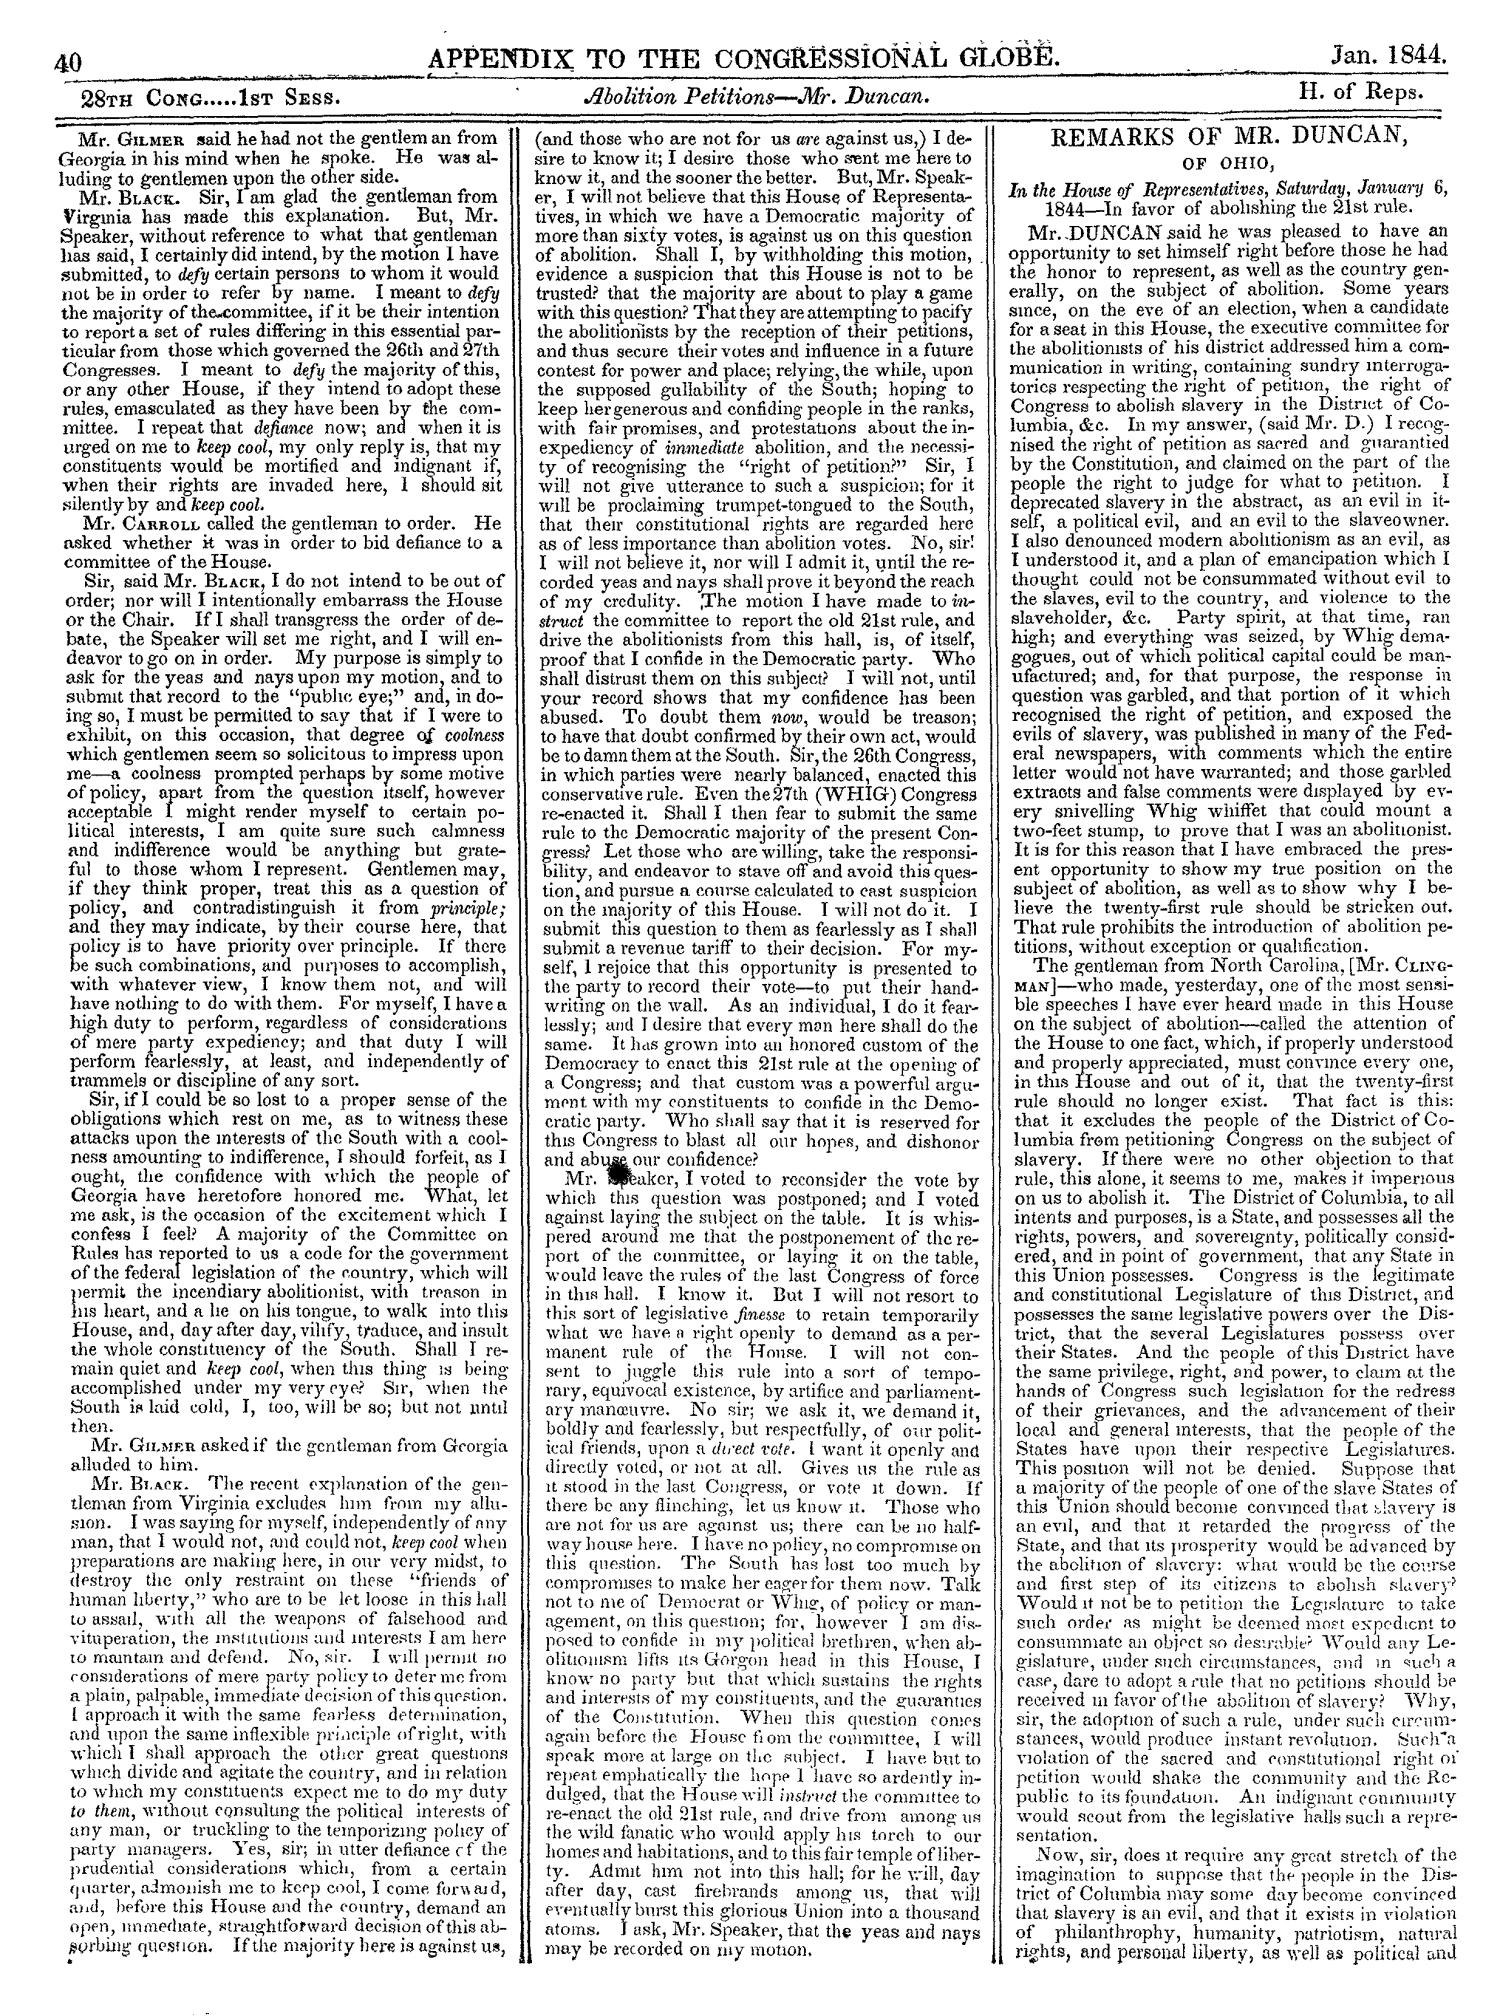 The Congressional Globe, Volume 13, Part 2: Twenty-Eighth Congress, First Session                                                                                                      40